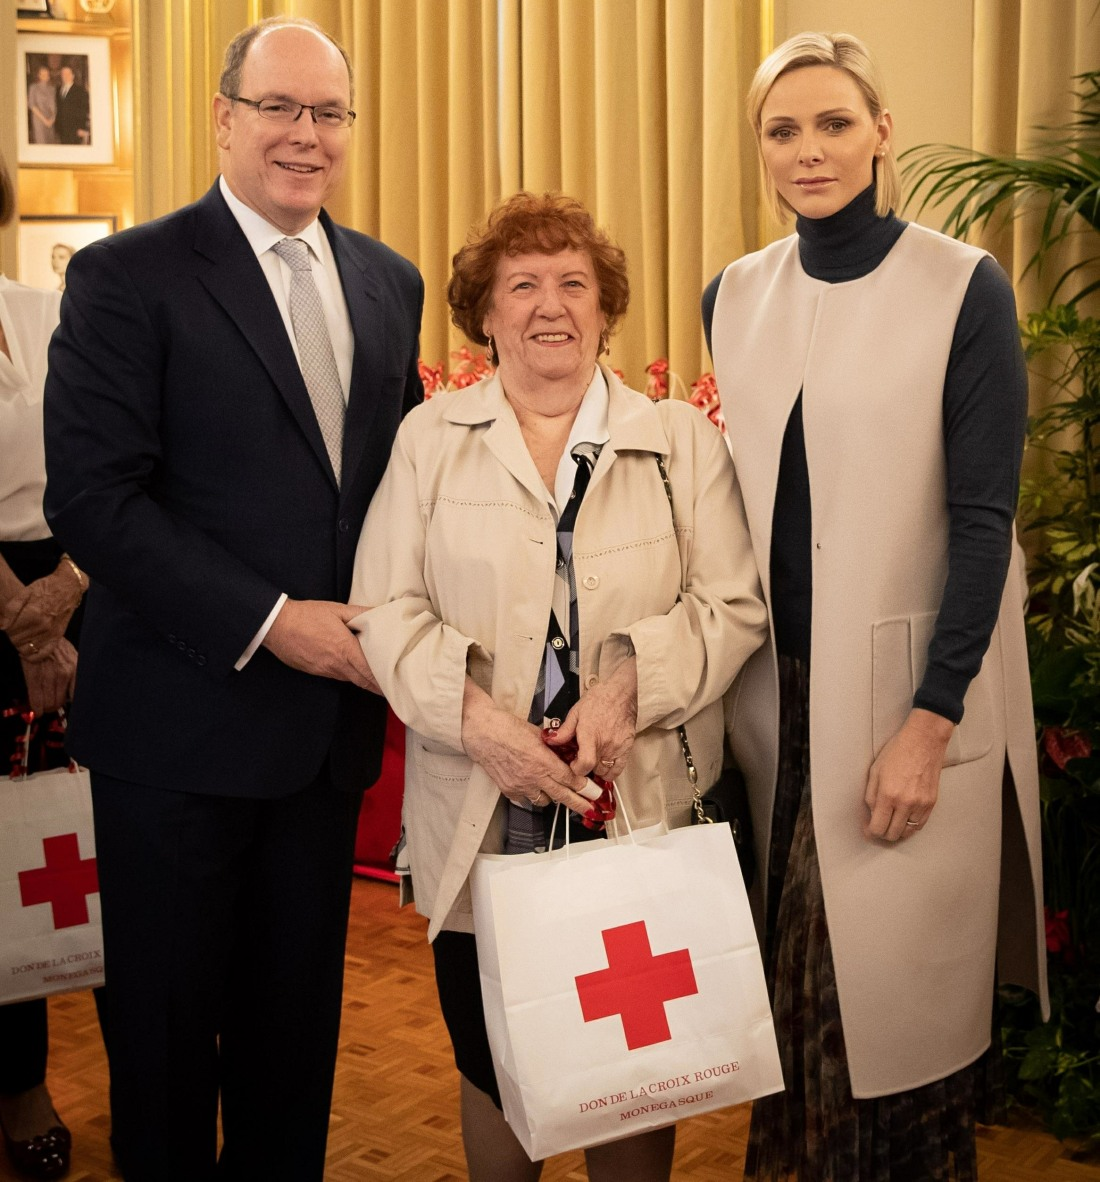 Prince Albert II and Princess Charlene of Monaco present gifts to the disadvantaged at the Monegasque Red Cross office